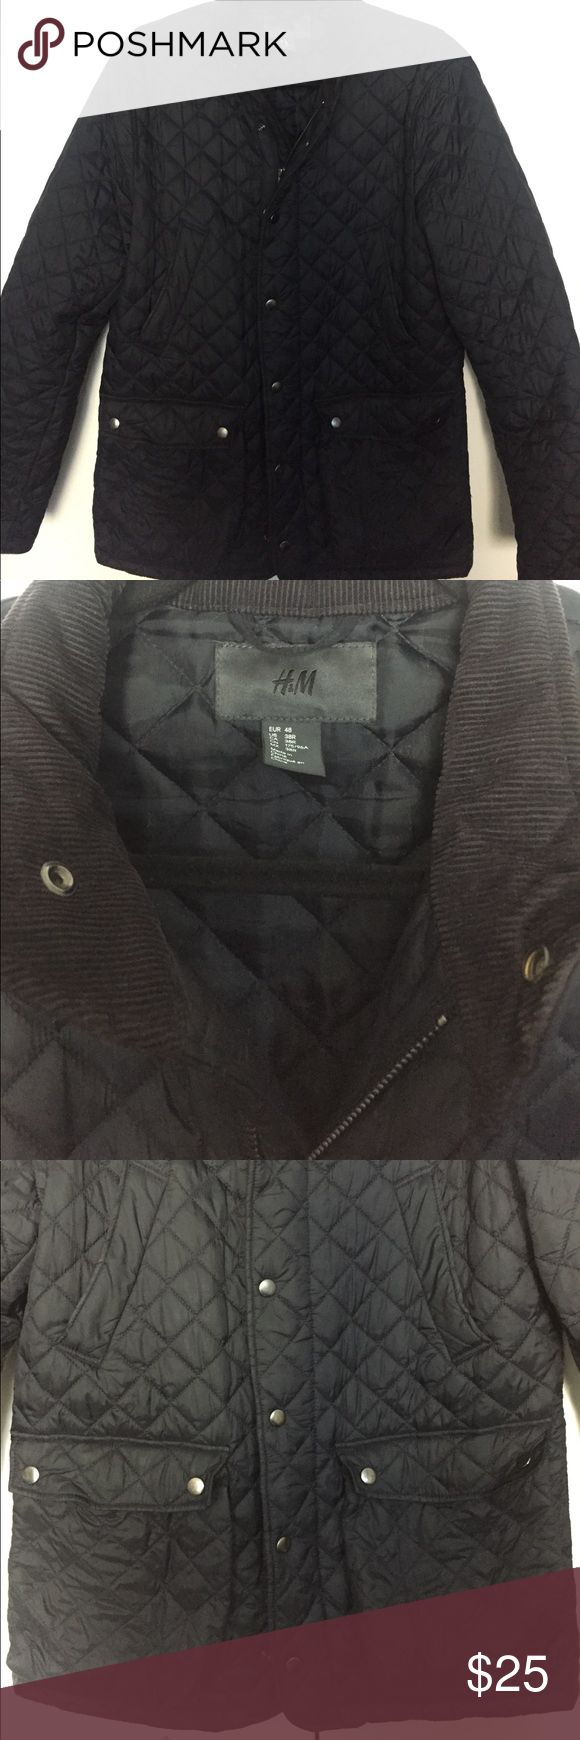 H&M Men's Navy Quilted Jacket Men's navy quilted jacket from H&M. Corduroy detailing on the collar. Zips up and also snaps over the zipper. Looks very similar to the Barbour style quilted men's jacket. Perfect for fall! H&M Jackets & Coats Lightweight & Shirt Jackets